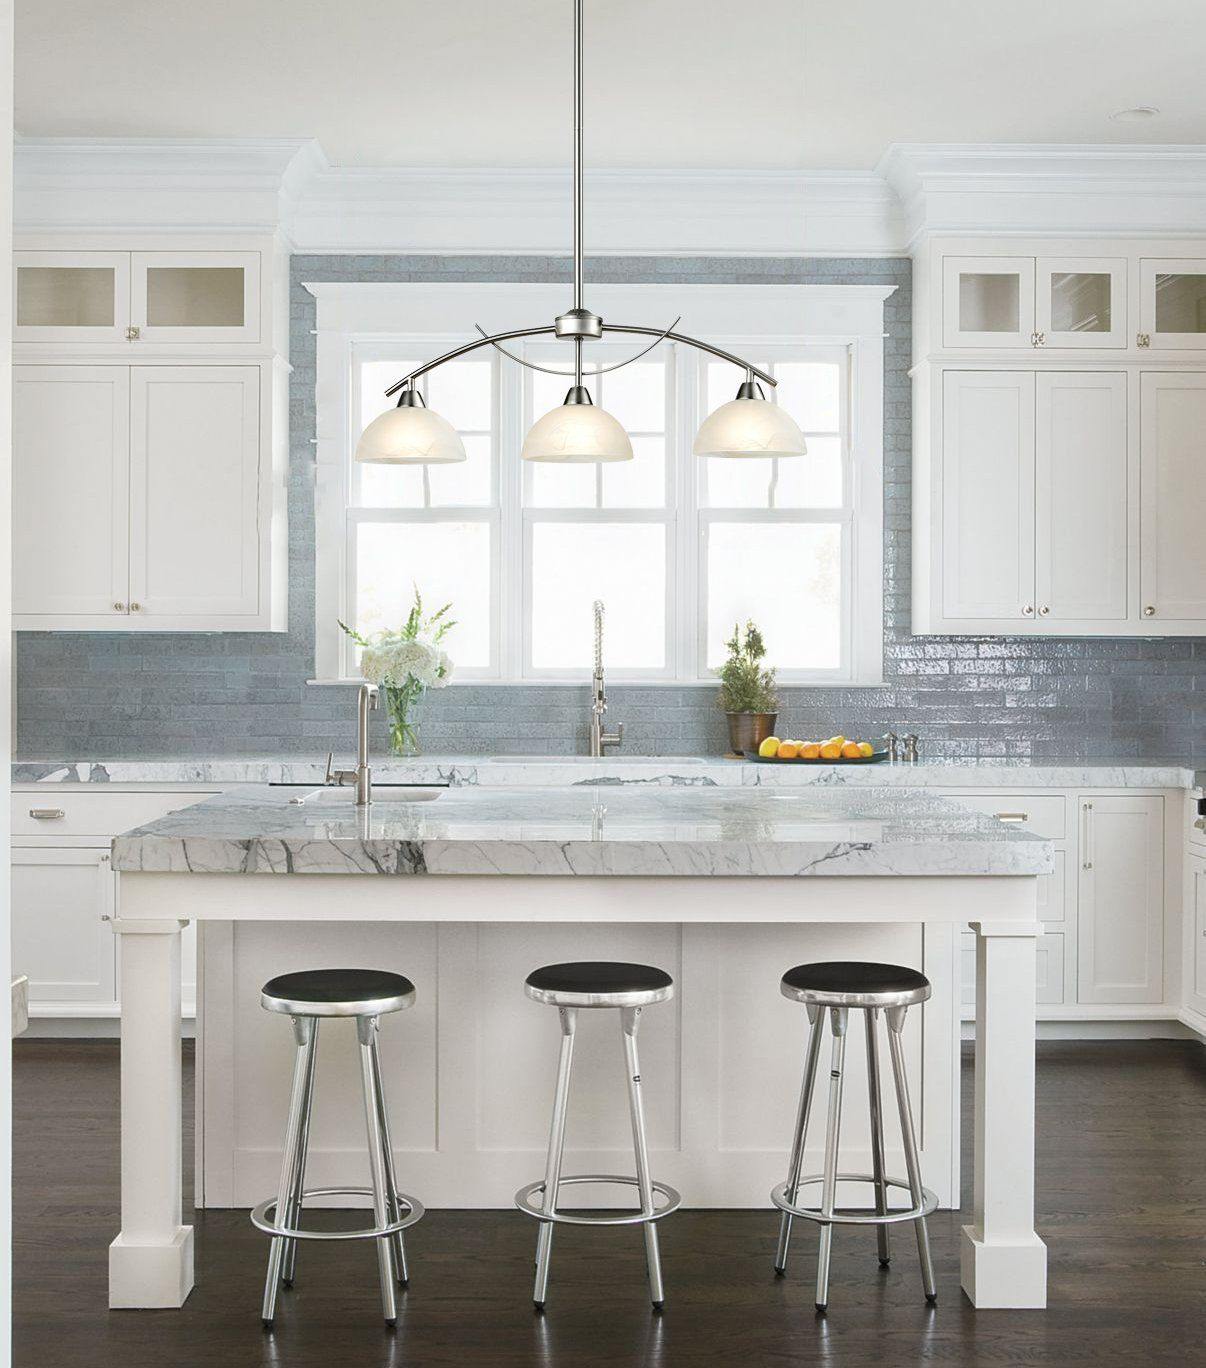 Modern Frosted Glass Shades Pendant Light Modern Glass Pendant Lights Over Kitchen Islan Glass Shade Pendant Light Glass Kitchen Kitchen Counter Island